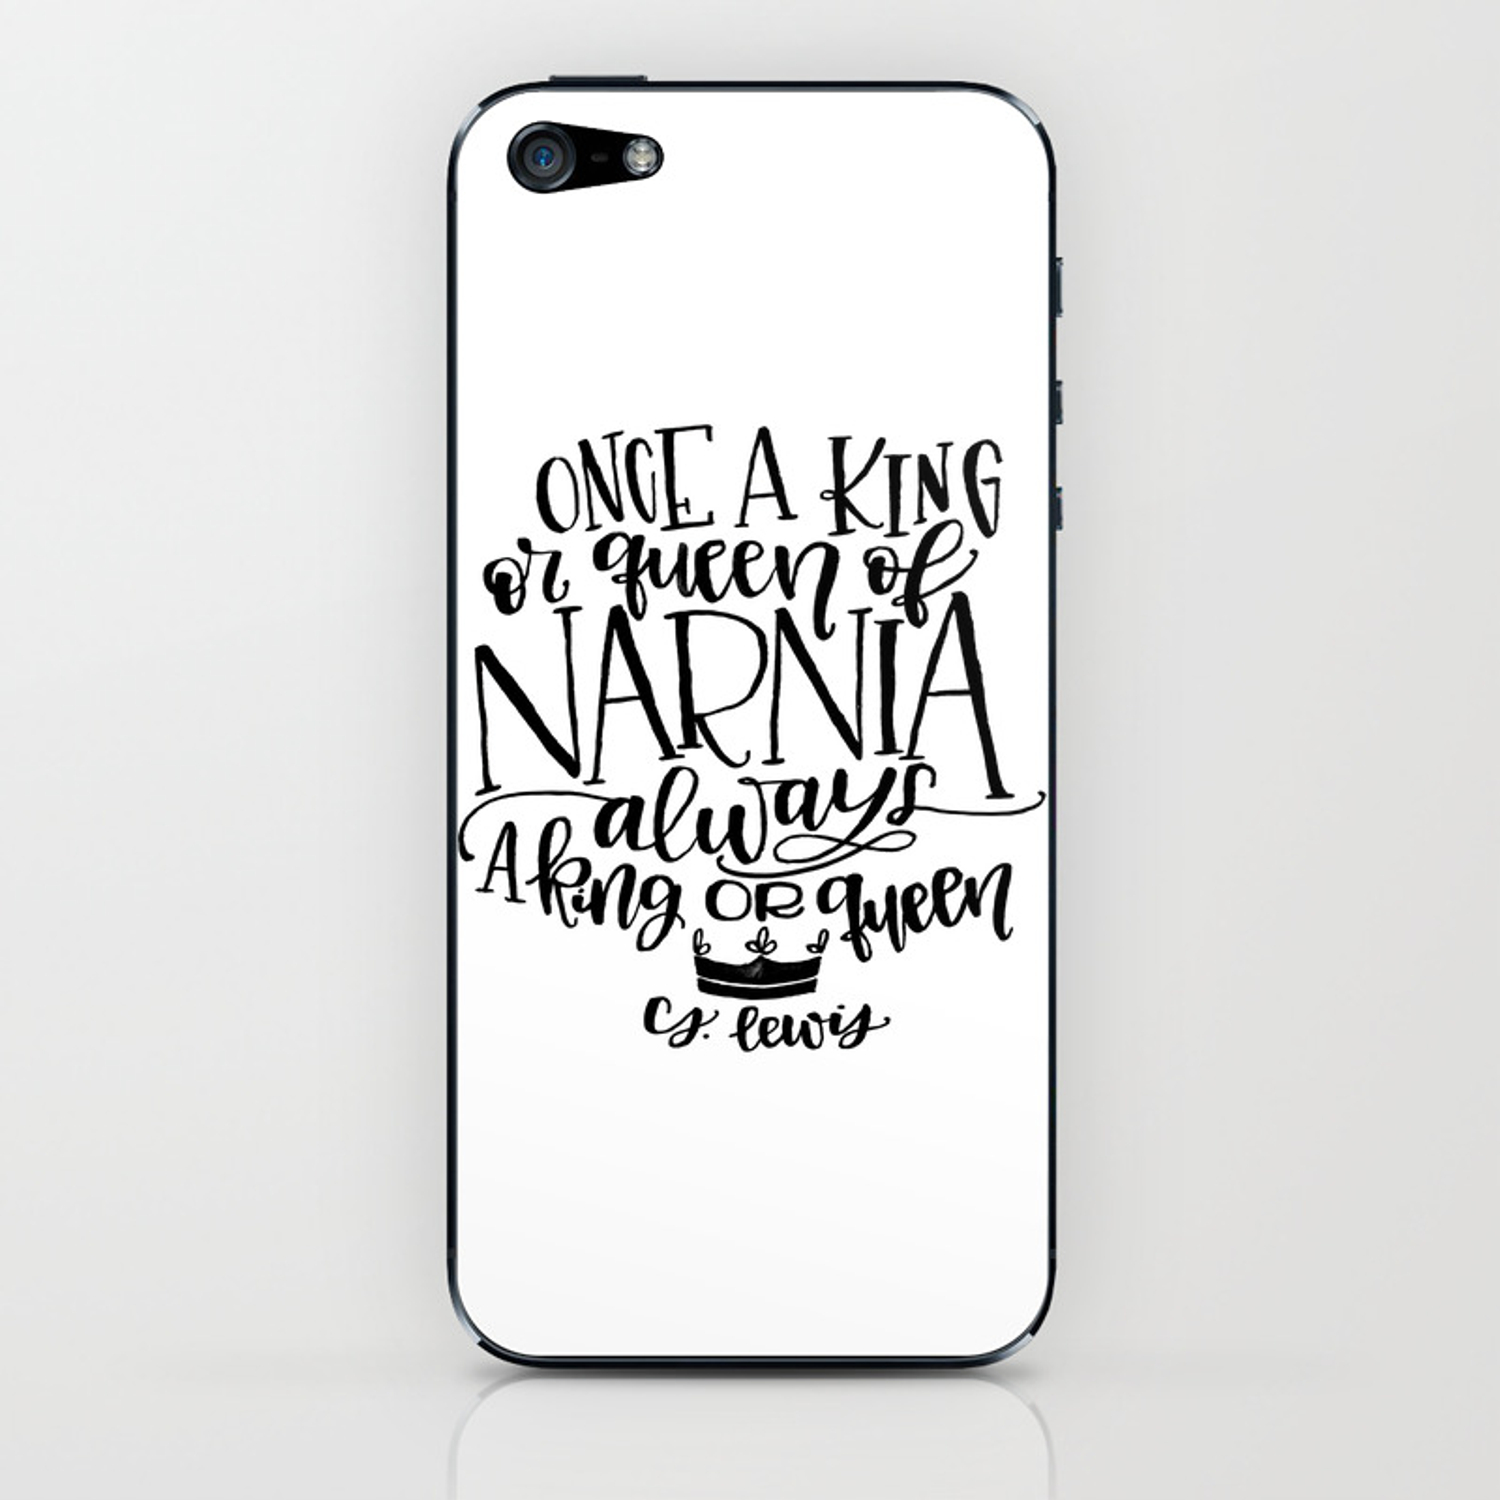 Once a King or Queen of Narnia, Always a King or Queen - C.S. Lewis Quote  iPhone Skin by minipress